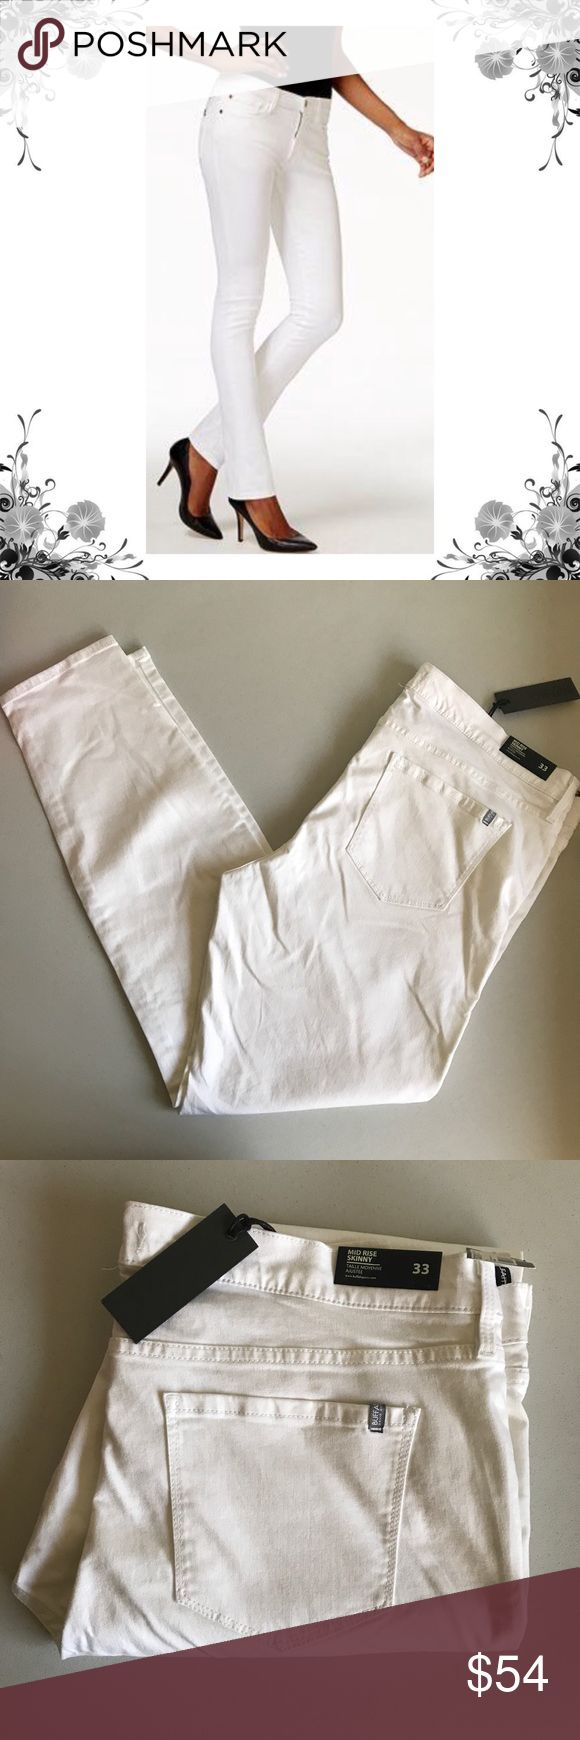 {Buffalo David Bitton} Bright White Skinny Jeans Measurements coming soon! Classic mid rise skinny jean in clean white. These jeans mold and hold to your body, and are ideal for both traditional and curvy body types alike. 59% Modal, 31% Cotton, 9% Polyester, 1% Spandex. Price tag has been cut but is still intact. *Faint washable mark on one leg. Minor, but worth mentioning. Please see pics. Bundle for discounts! Thank you for shopping my closet! Bin Buffalo David Bitton Jeans Skinny